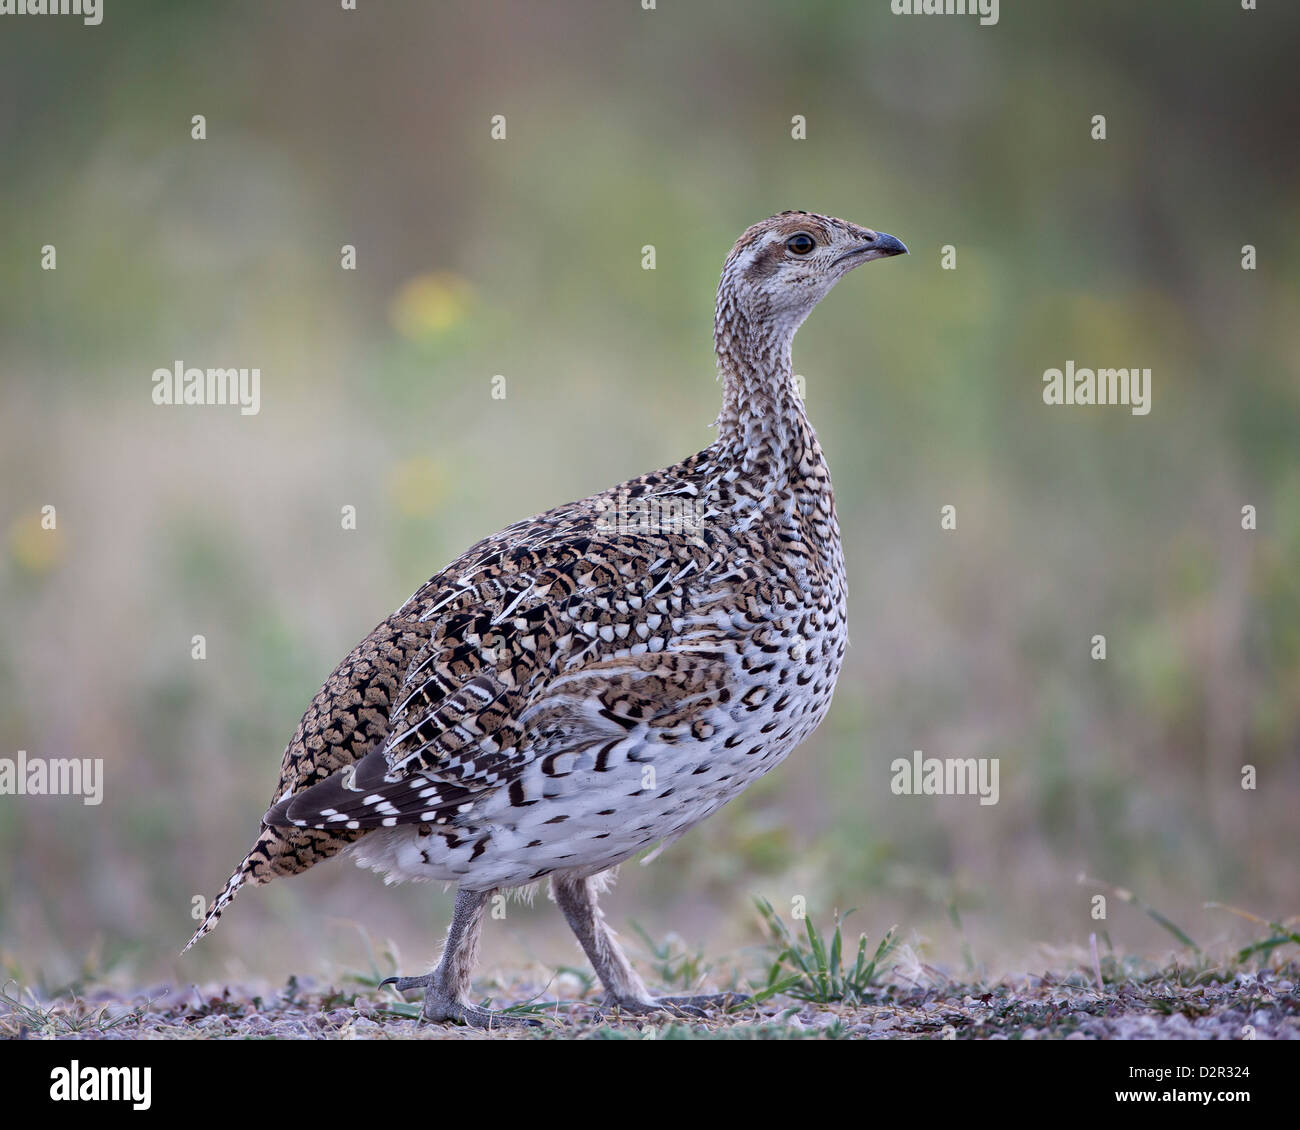 Sharp-tailed grouse (Tympanuchus phasianellus, previously Tetrao phasianellus), Custer State Park, South Dakota, - Stock Image